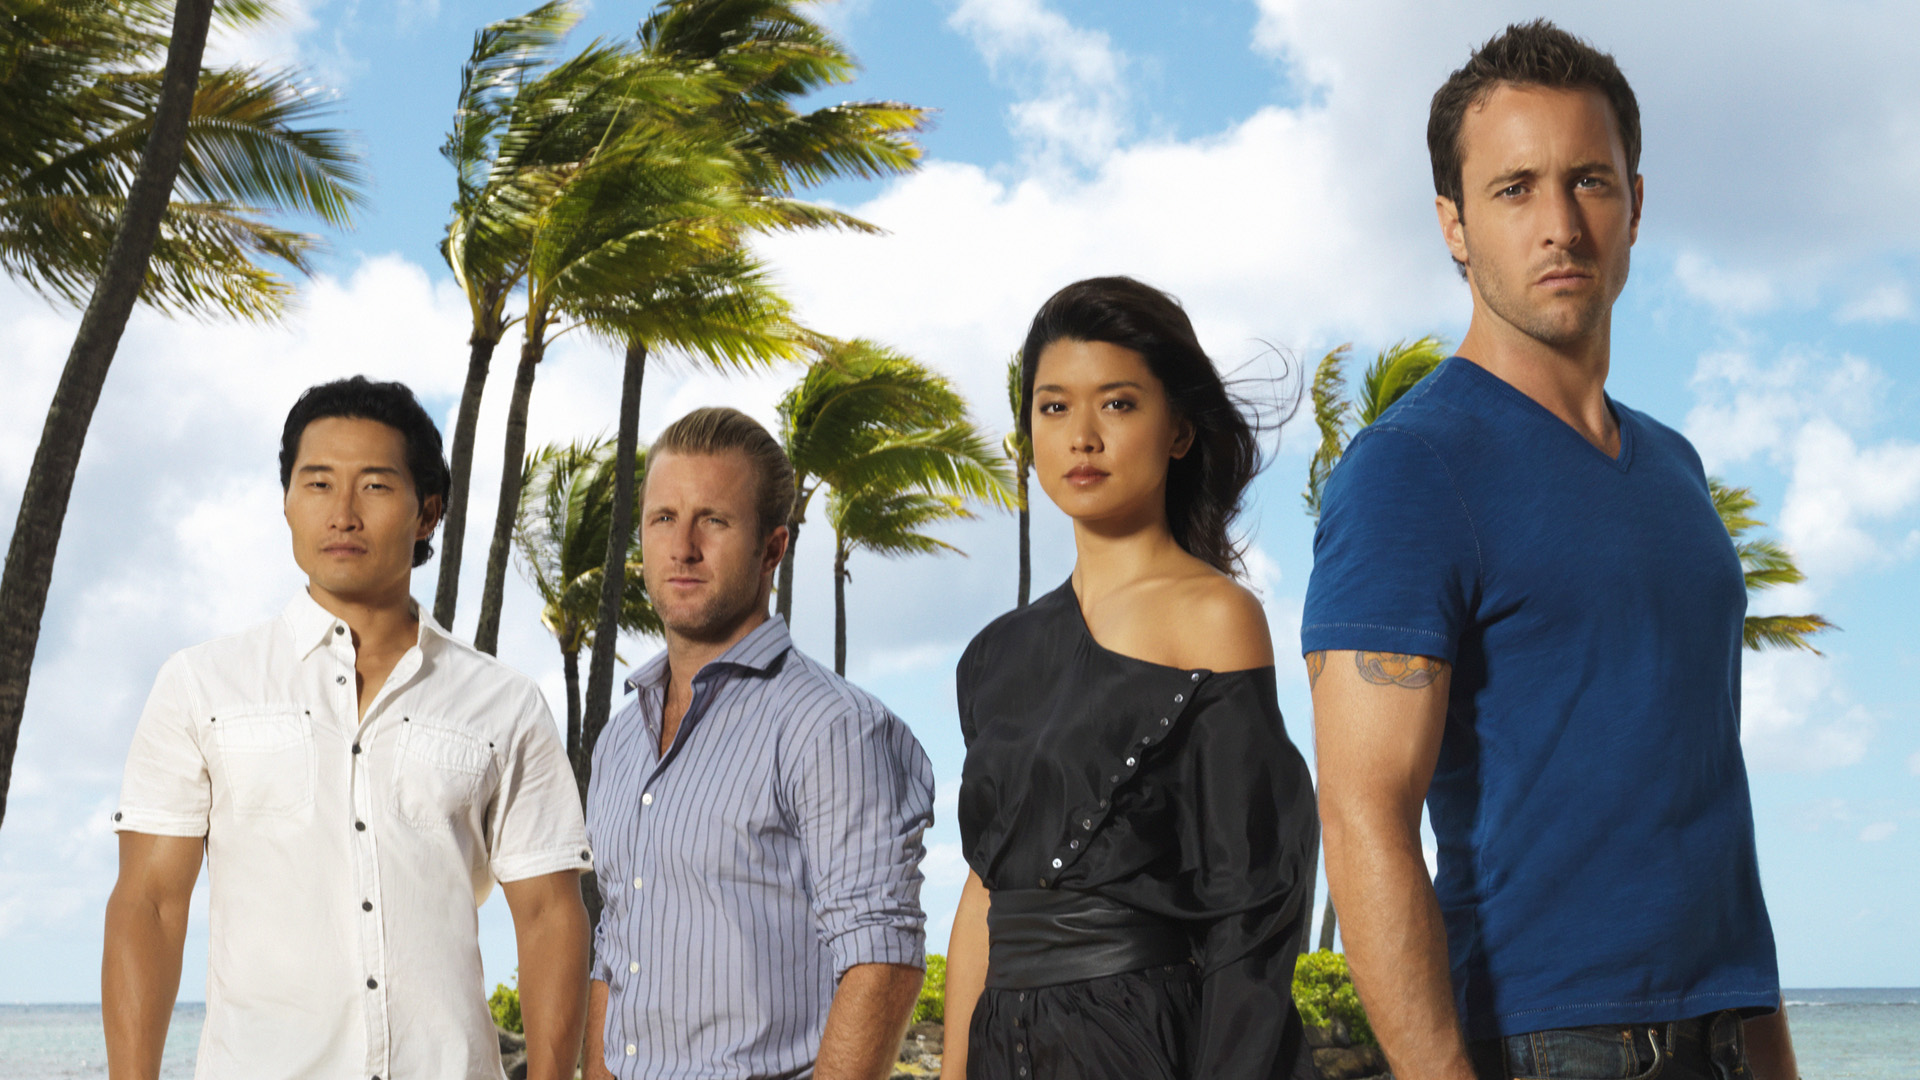 天堂執法者 第6季 第18集 Hawaii Five-O S6 Ep18